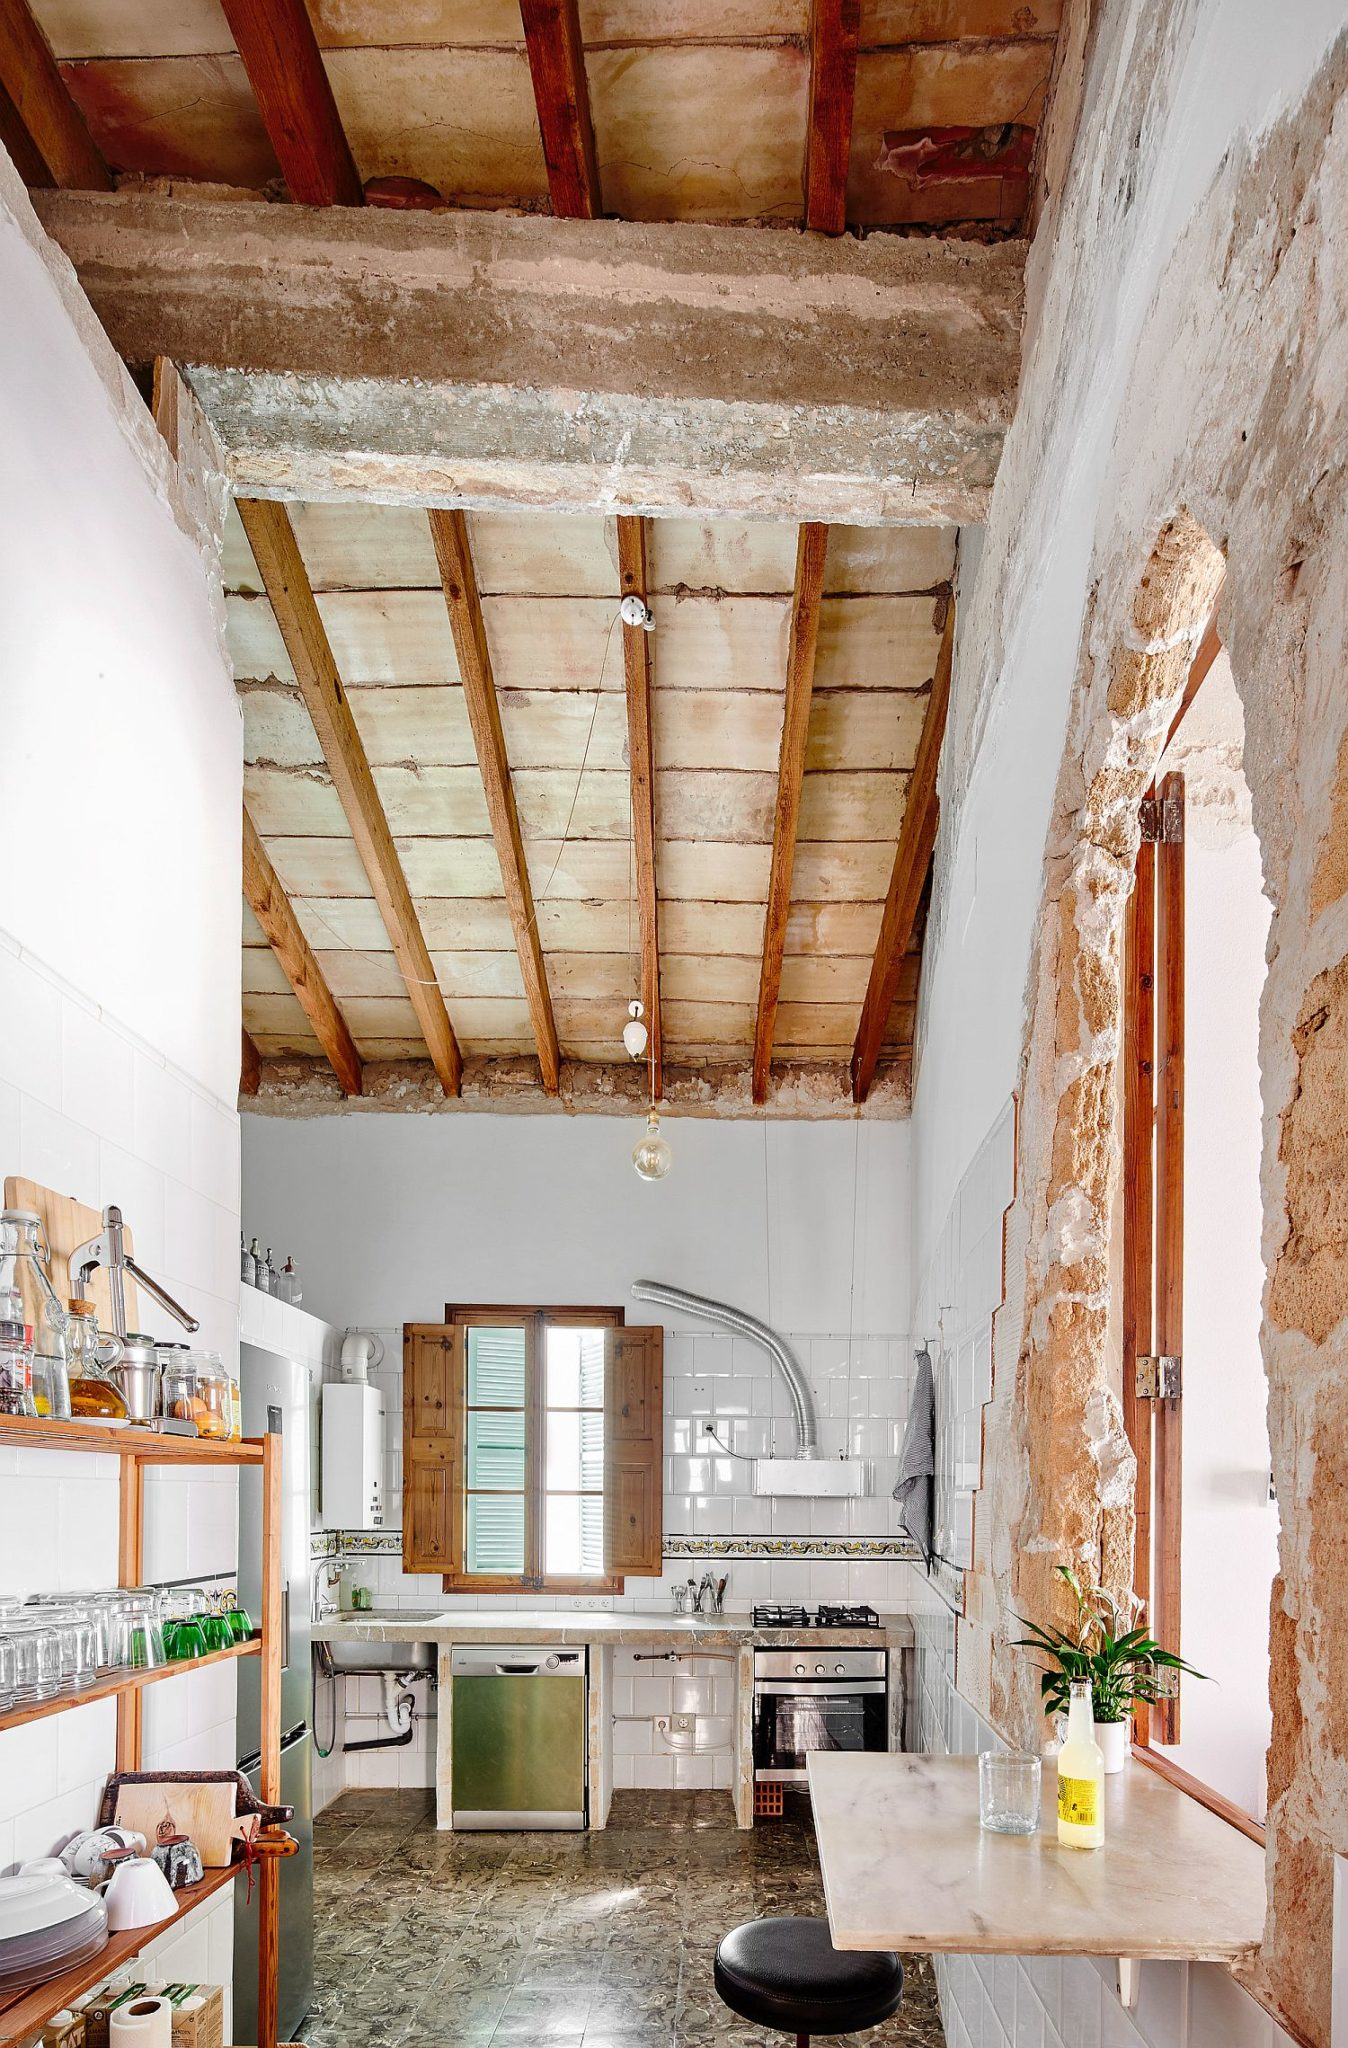 Old arches and high ceiling ensure that the interior is filled with natural light